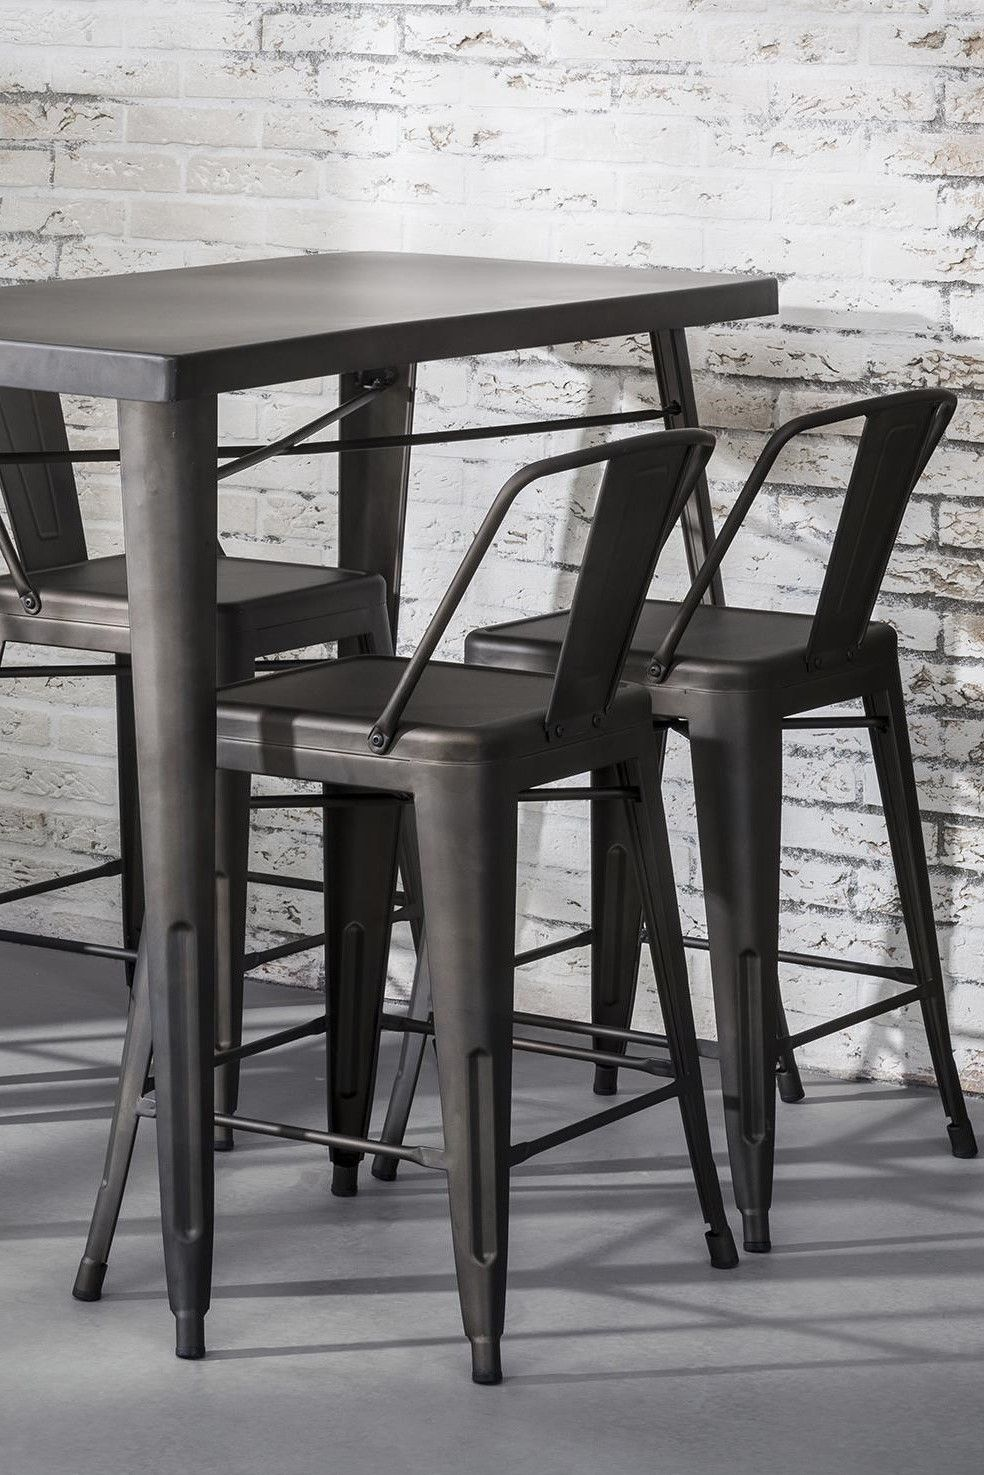 Bistro Tische Bartisch Bistro Tische Tables Pinterest Dining Chairs